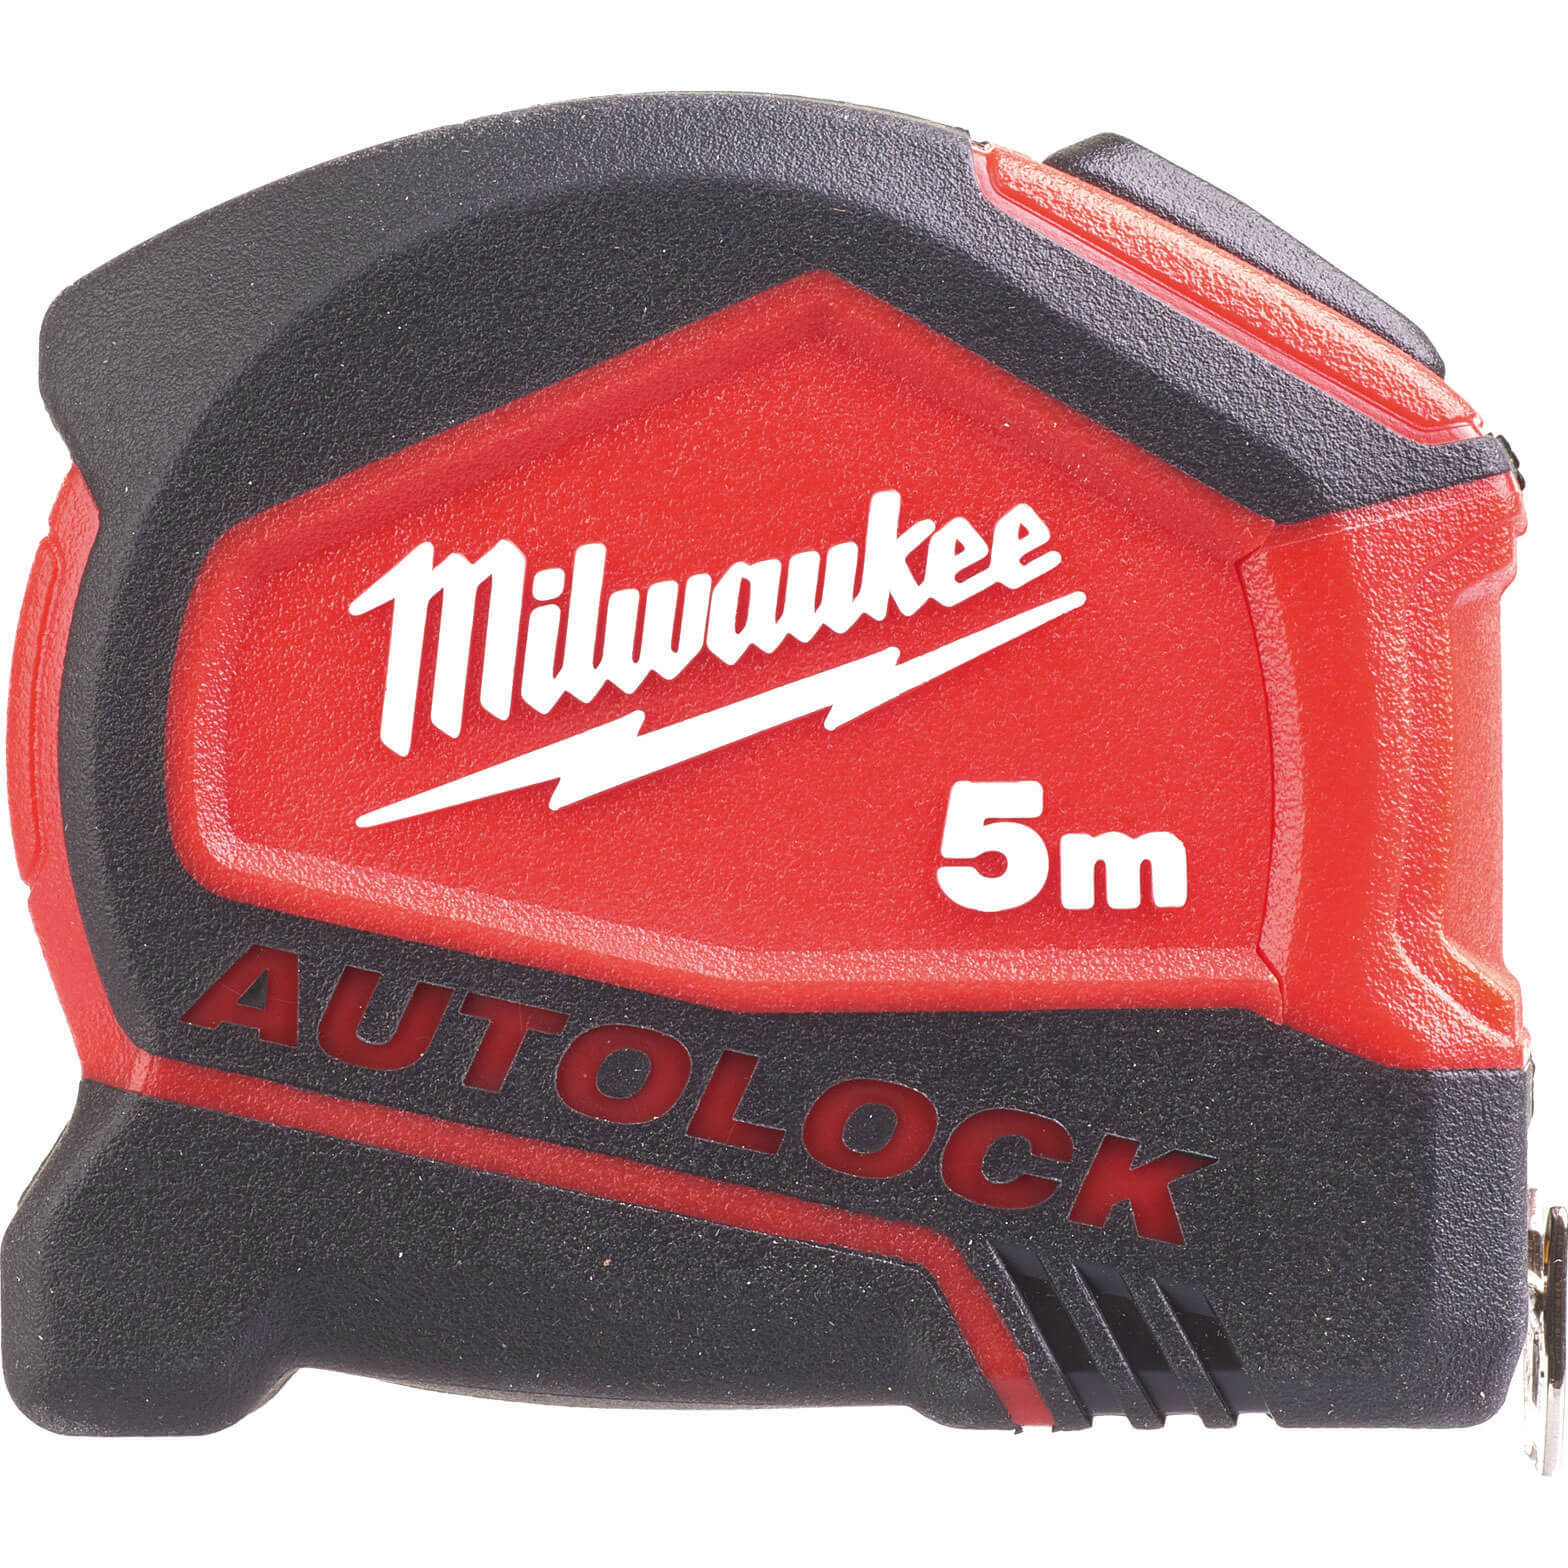 Image of Milwaukee Autolock Tape Measure Imperial & Metric 16ft / 5m 25mm